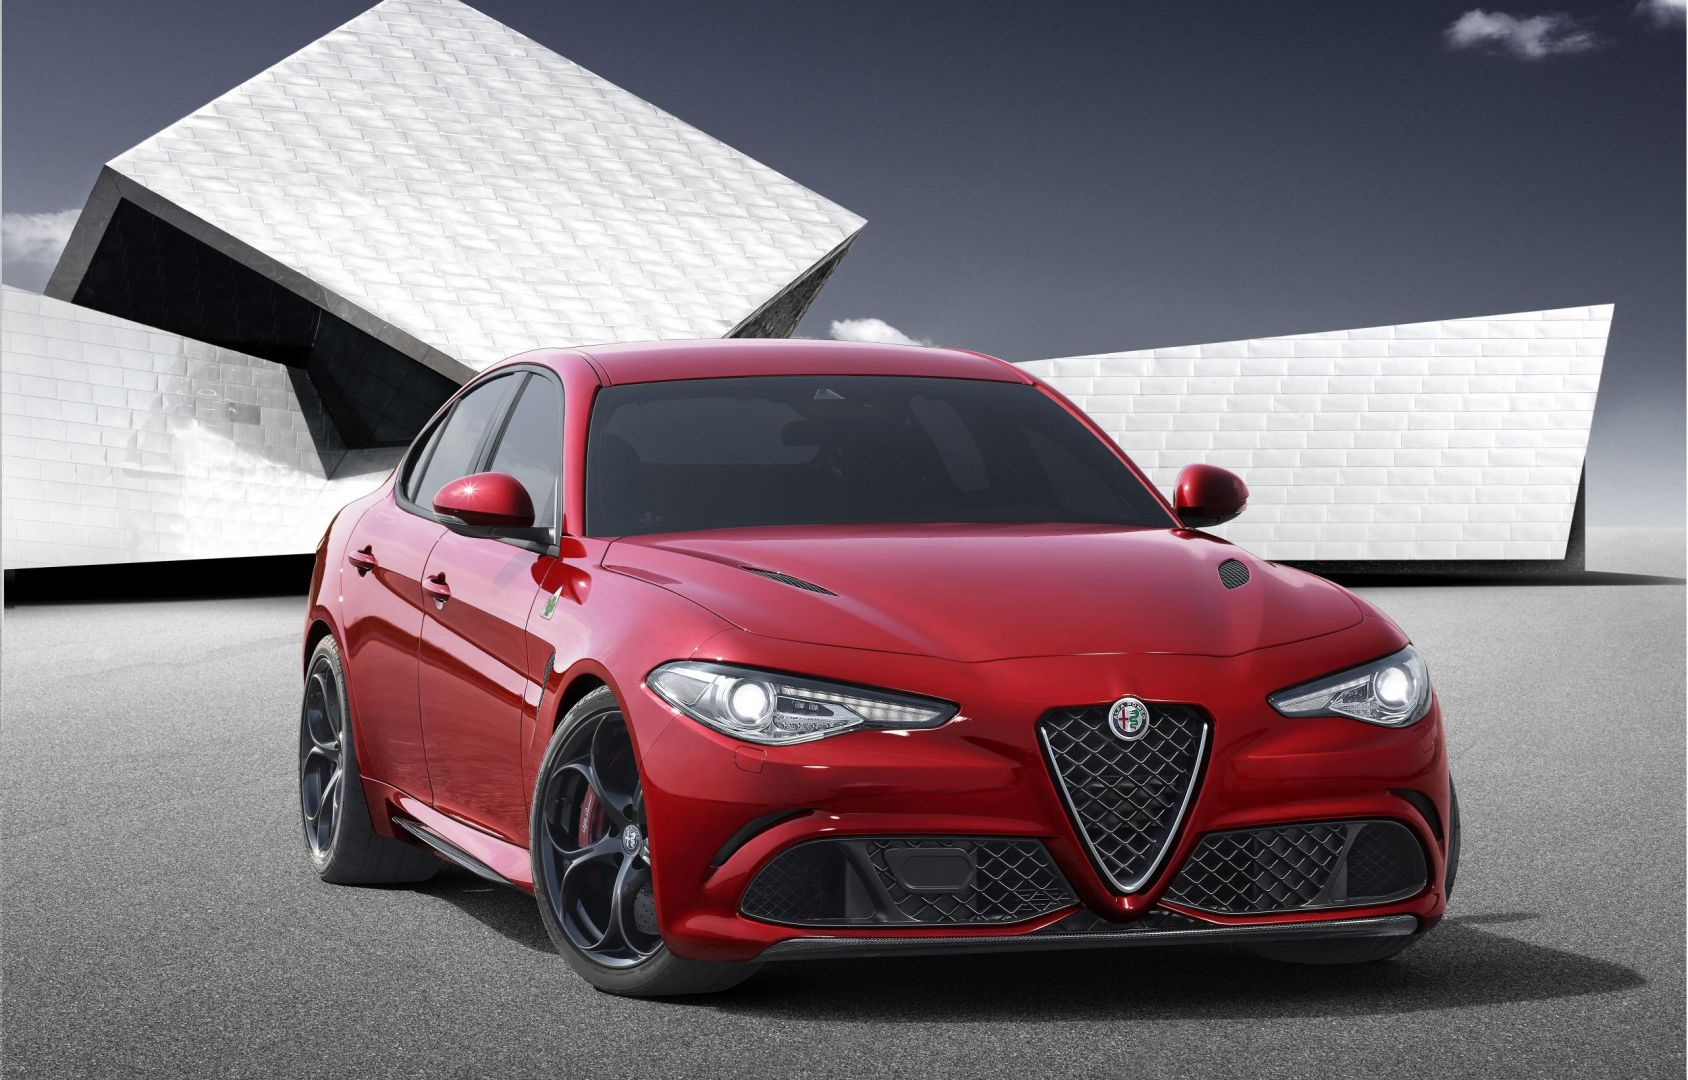 Alfa Romeo Giulia 2 - Alfa Romeo Giulia 2.2 TURBO DIESEL 180 CV AT8 BUSINESS SPORT LAUNCH EDITION